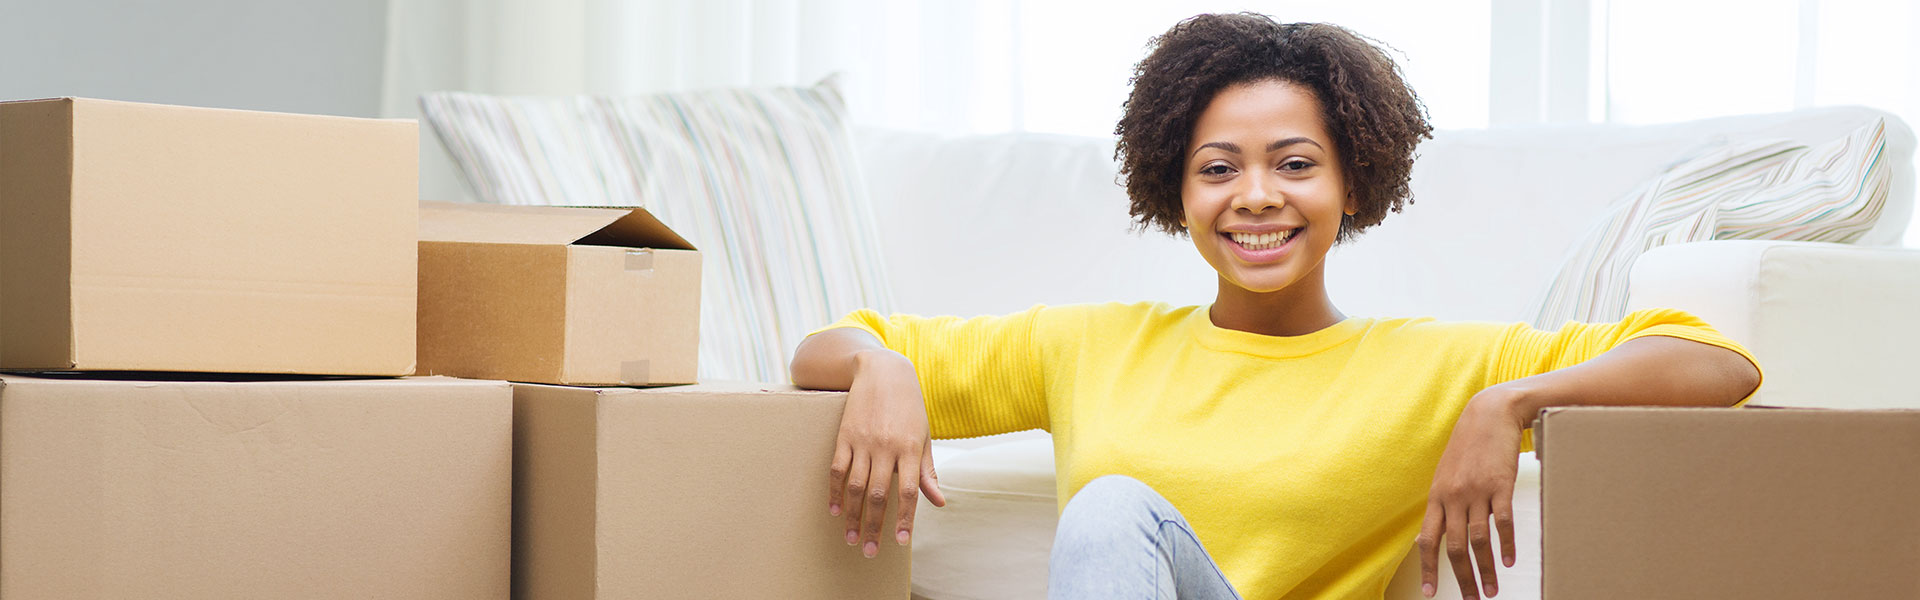 Woman Ready for Relocation Assistance